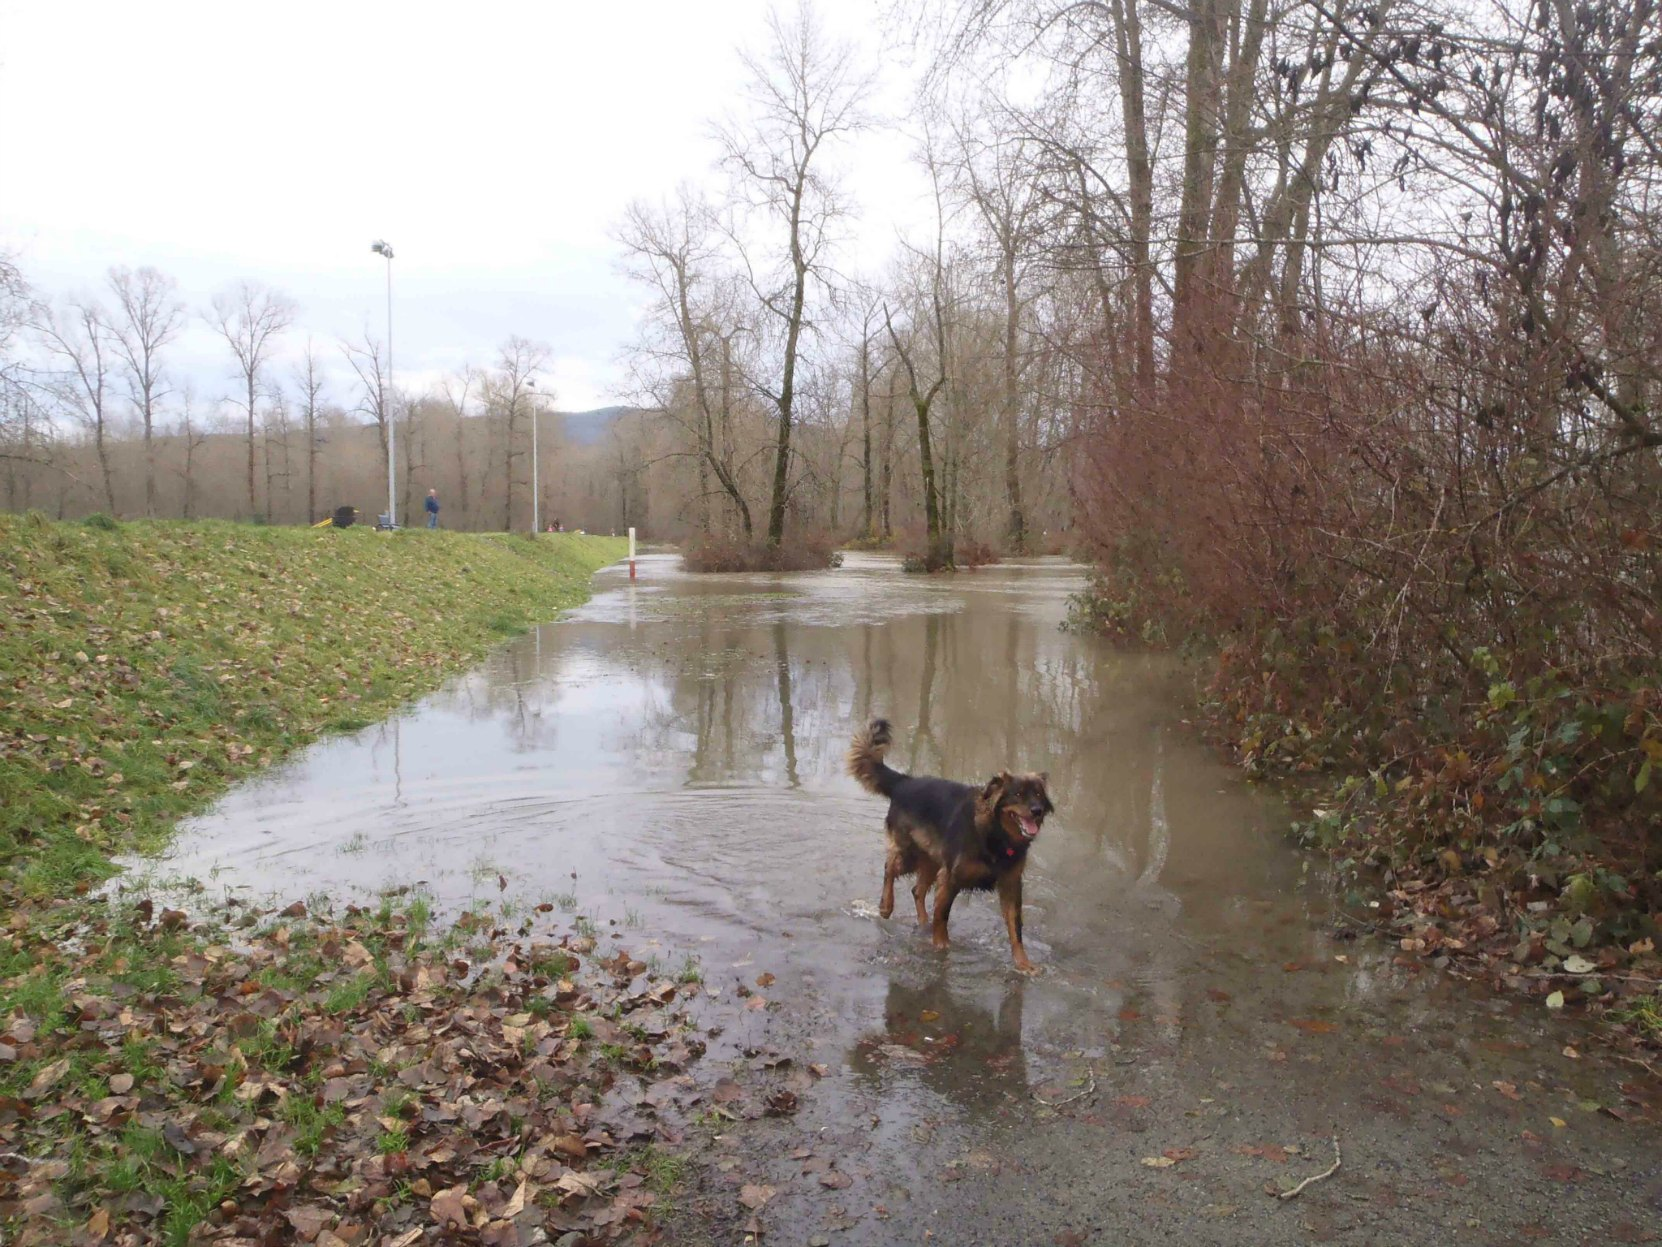 Cowichan River flooding up to the Macadam Park Dike. This dike project was undertaken under Mayor Douglas W. Barker